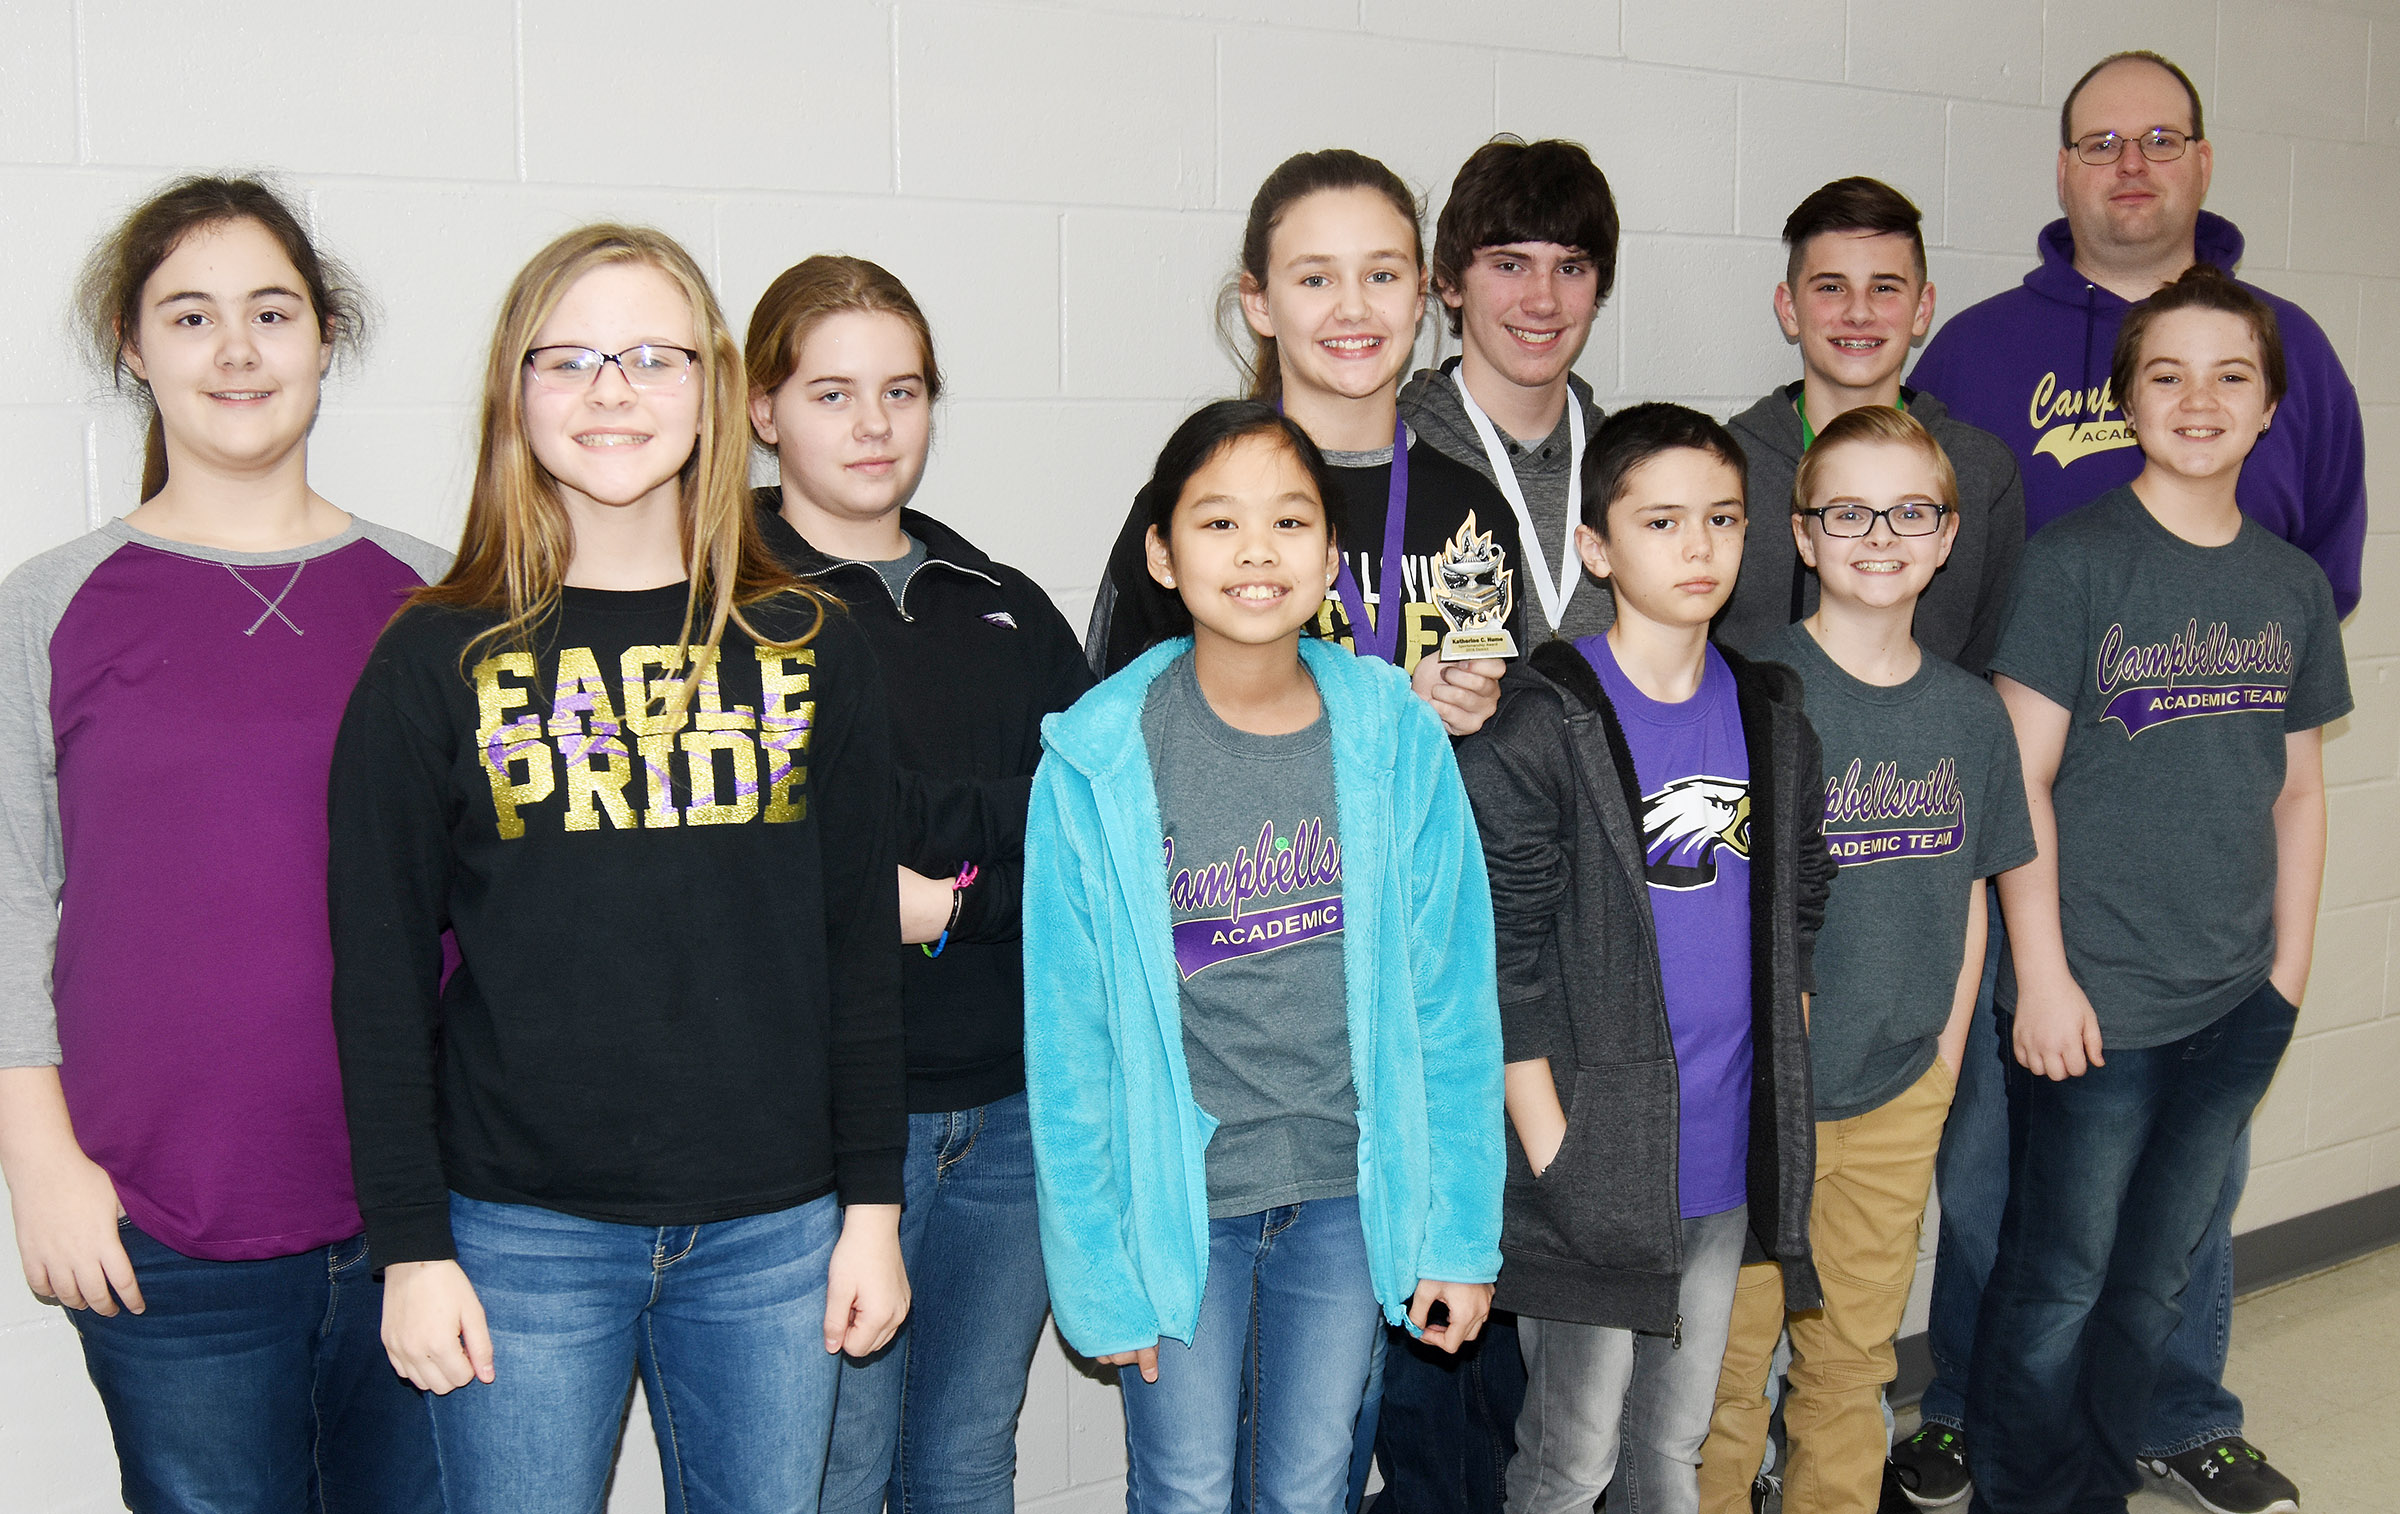 CMS academic team members competed at District Governor's Cup competition on Saturday, Jan. 20, and Monday, Jan. 22, and won several awards. And, as a result, seven students will advance to regional competition. Pictured are, from left, front, sixth-graders Karlie Cox, Angelica Seng, Isaac Billeter, Caleb Holt and Kayden Birdwell. Back, sixth-graders Brianna Dobson and Layla Steen, seventh-grader Haylee Allen, eighth-grader Peyton Dabney, sixth-grader Isaac Garrison and coach Steven Gumm. Absent from the photo is seventh-grader Whitney Frashure.